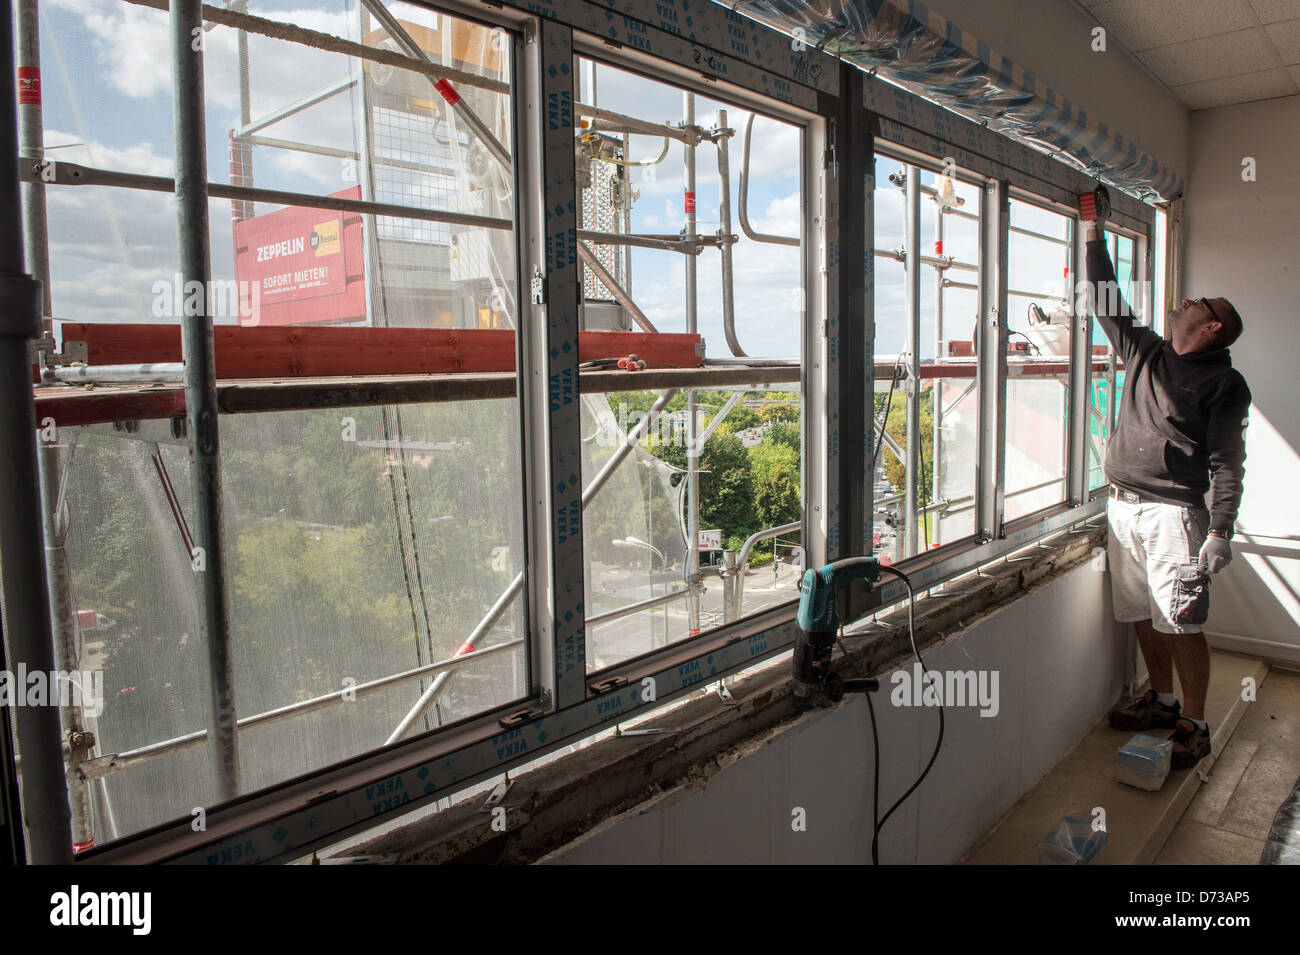 Berlin, Germany, workers assemble under a thermal window - Stock Image